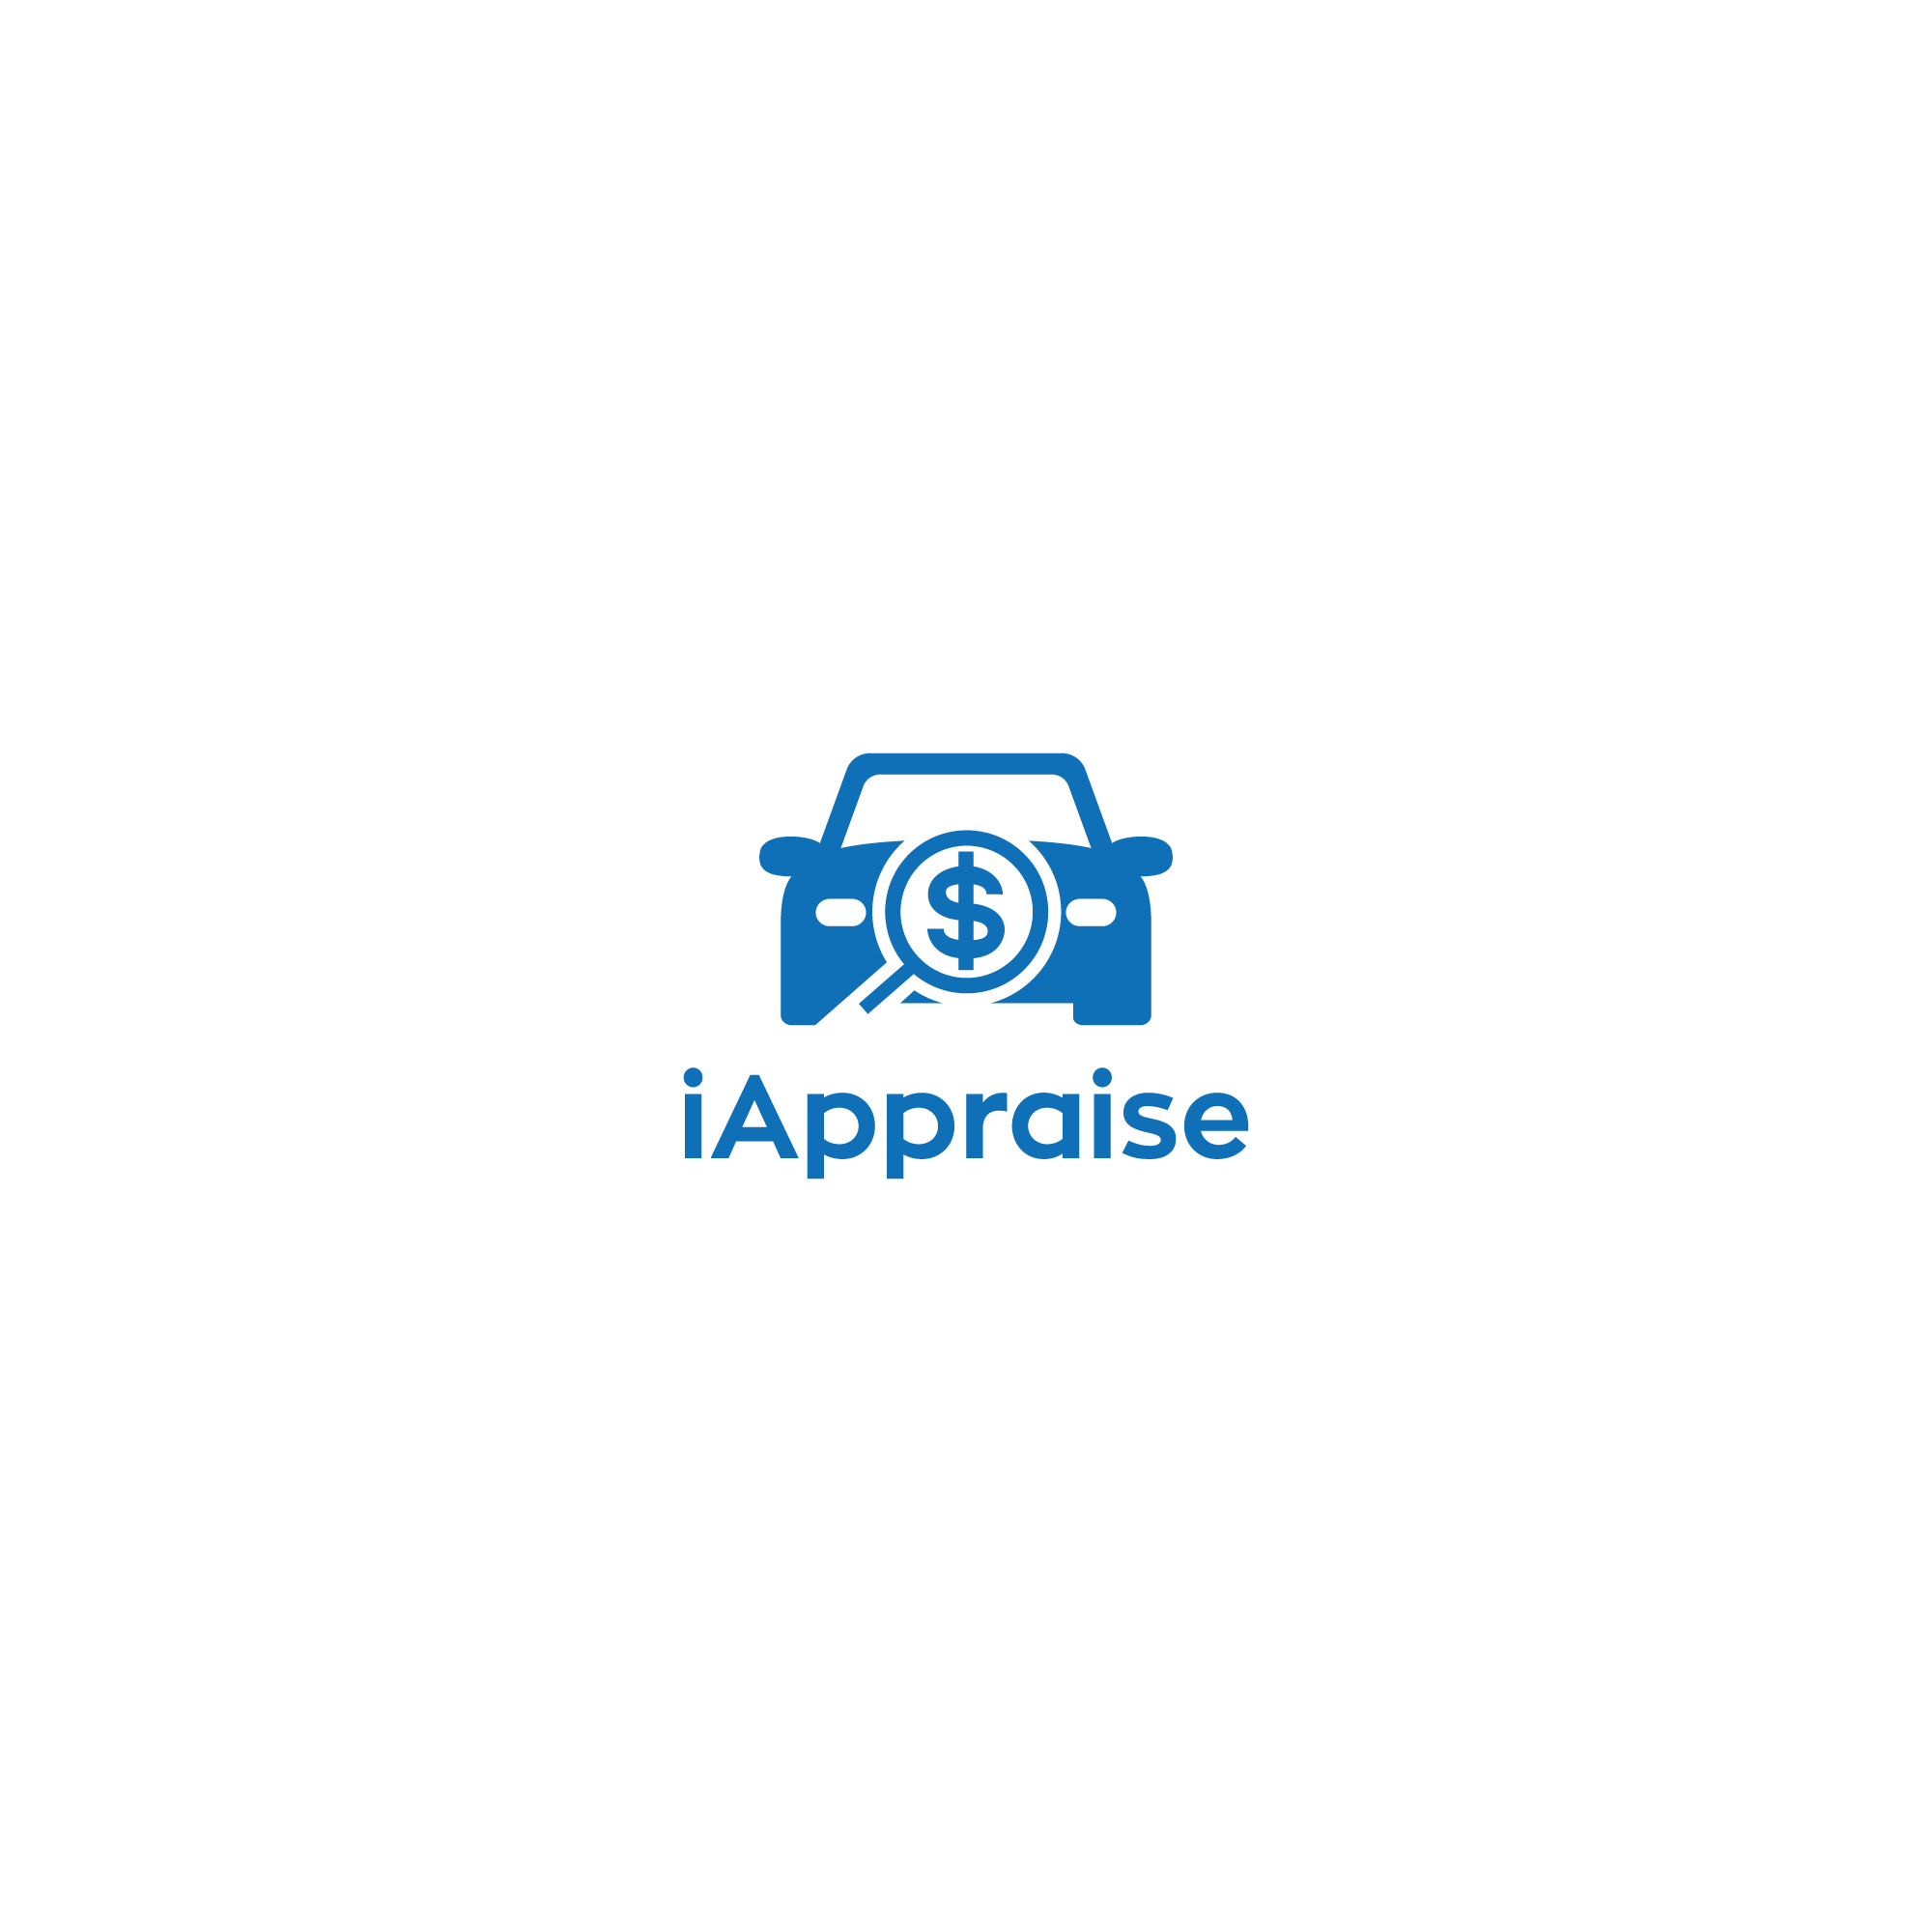 Automotive Application for appraising cars. Detailed description of what is needed provided.